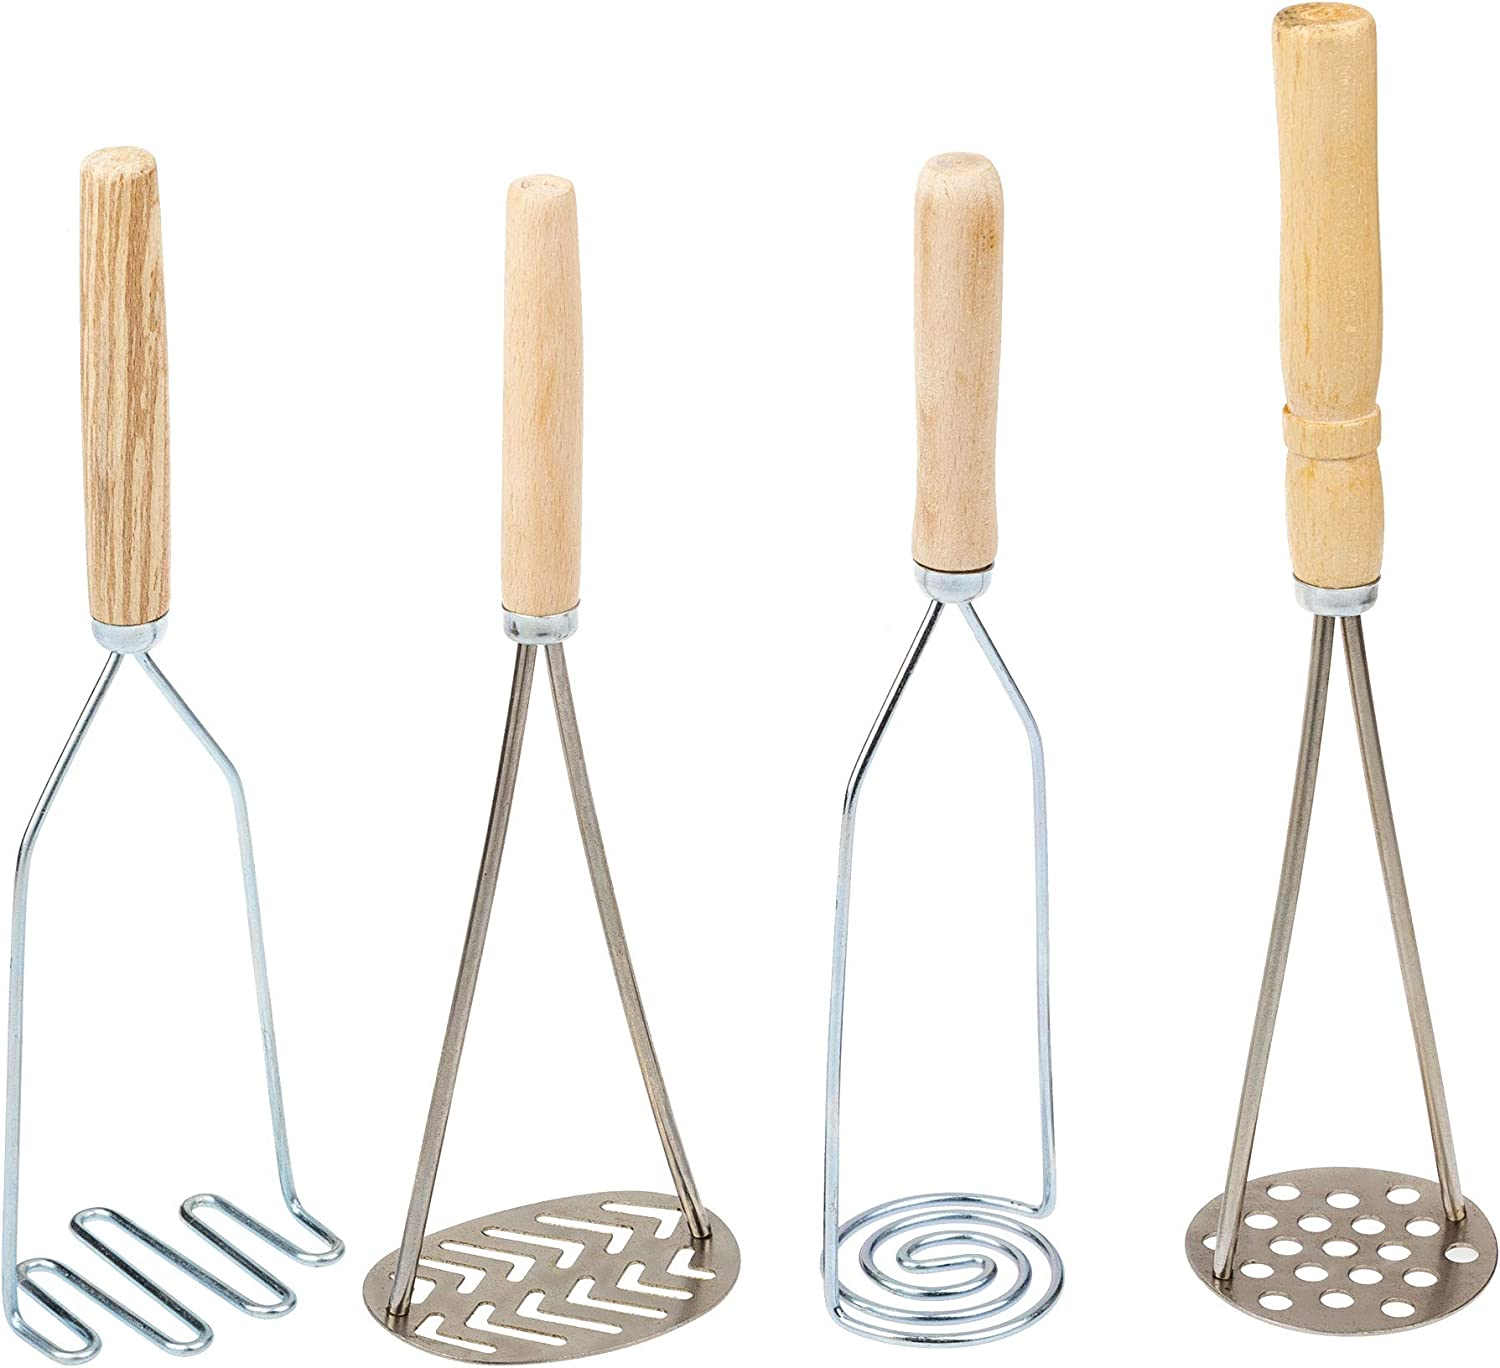 Manual Stainless Steel Cooking Potatoes Masher - Pack of 4 - Kitchen Potato Food Masher with Handle Bean Smasher